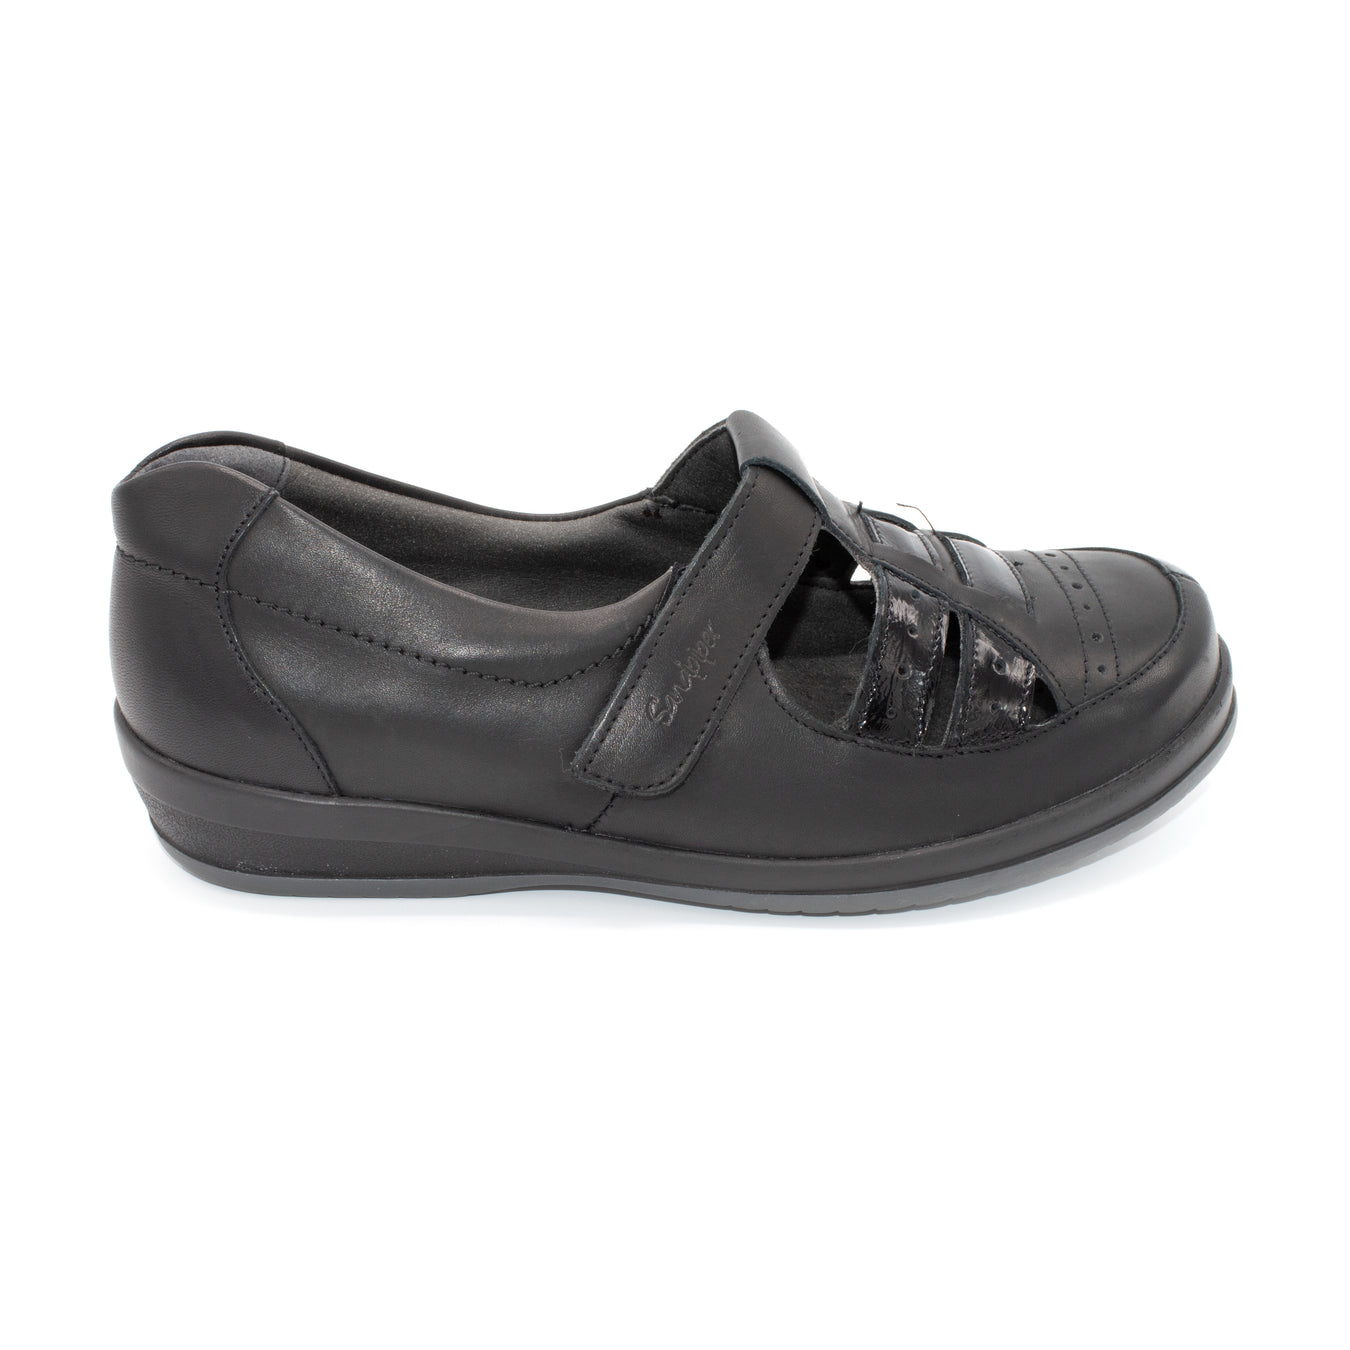 Ladies Wide Fit Shoes For Swollen Feet